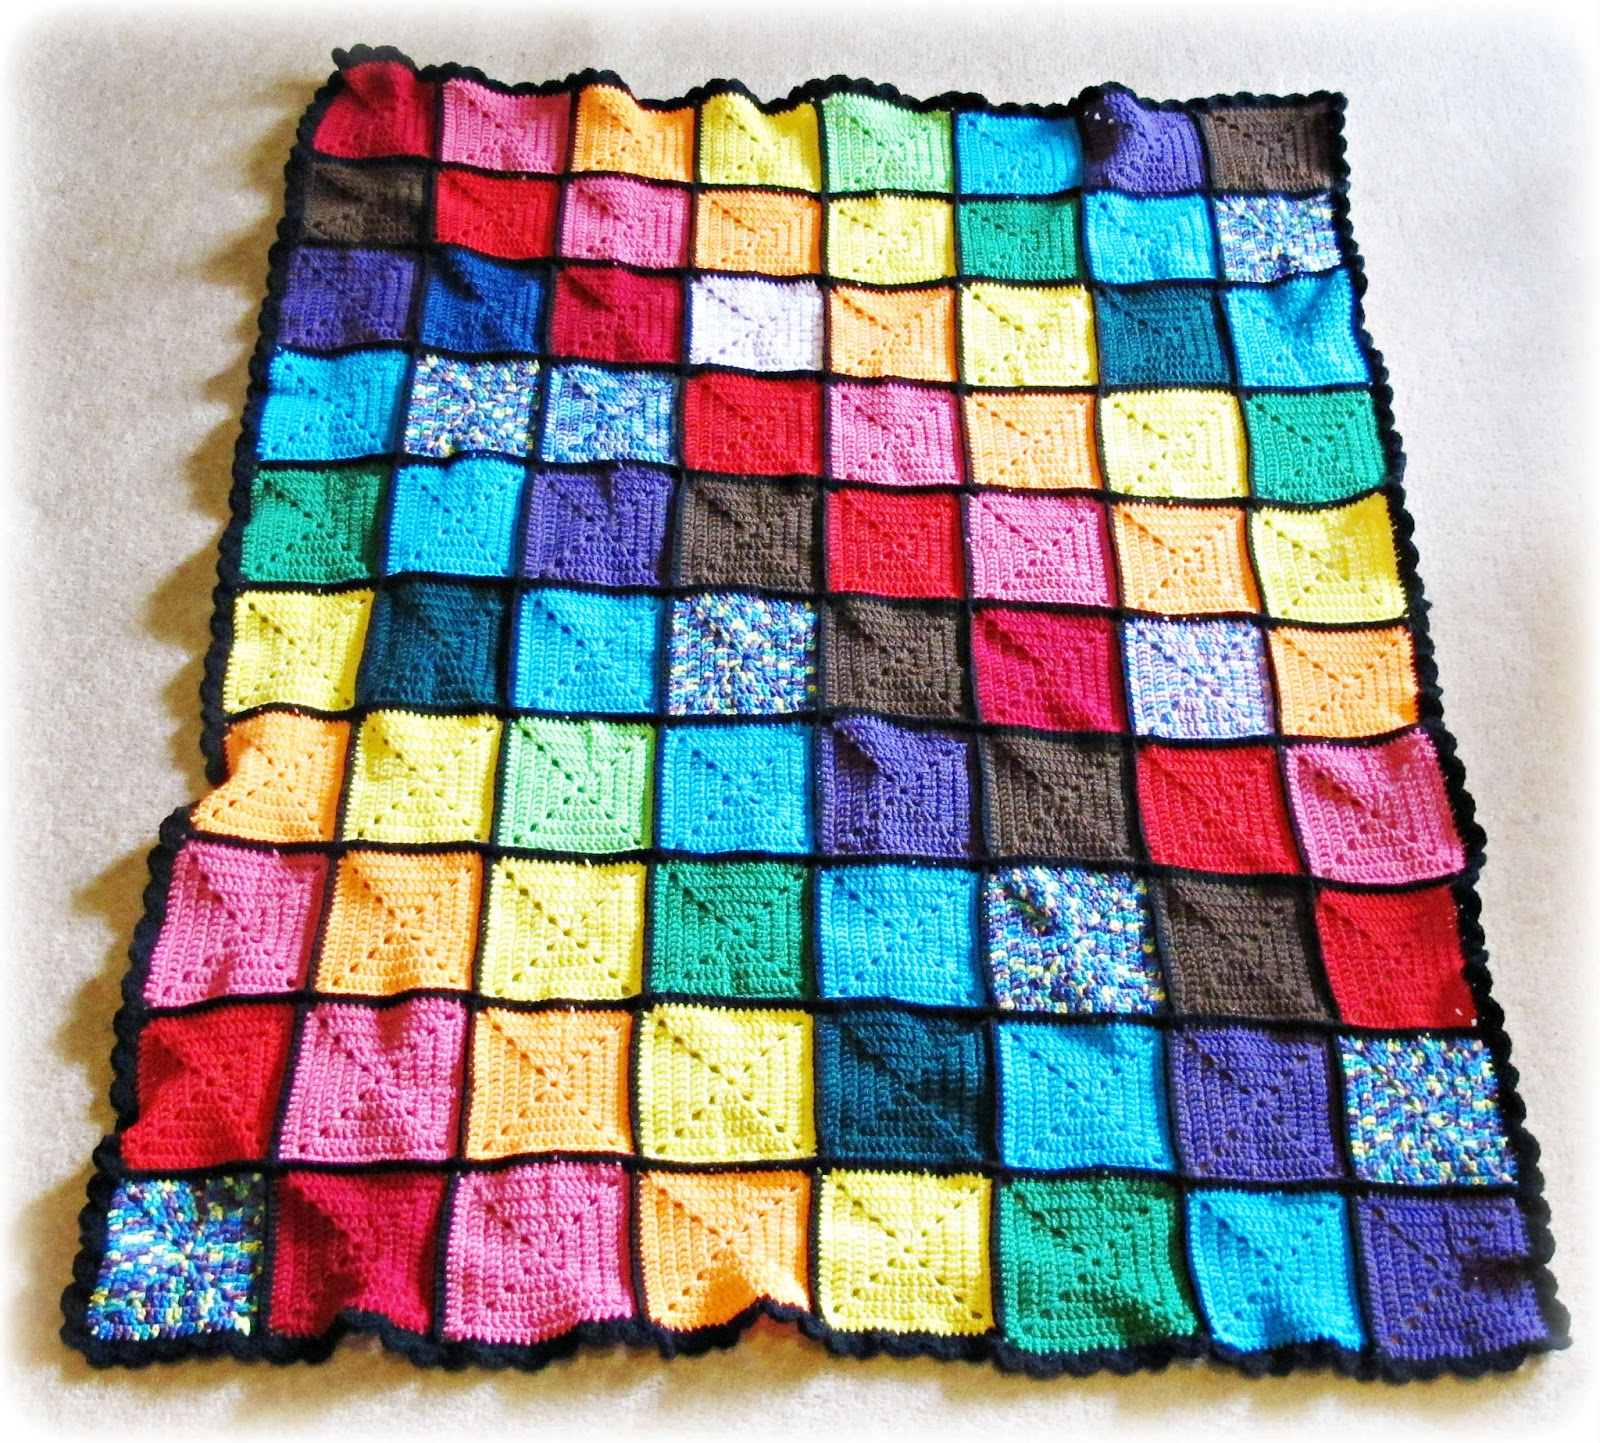 image crochet shawl blanket rainbow licorice allsorts hamlin fistula ethipio addis ababa crochet for a cause